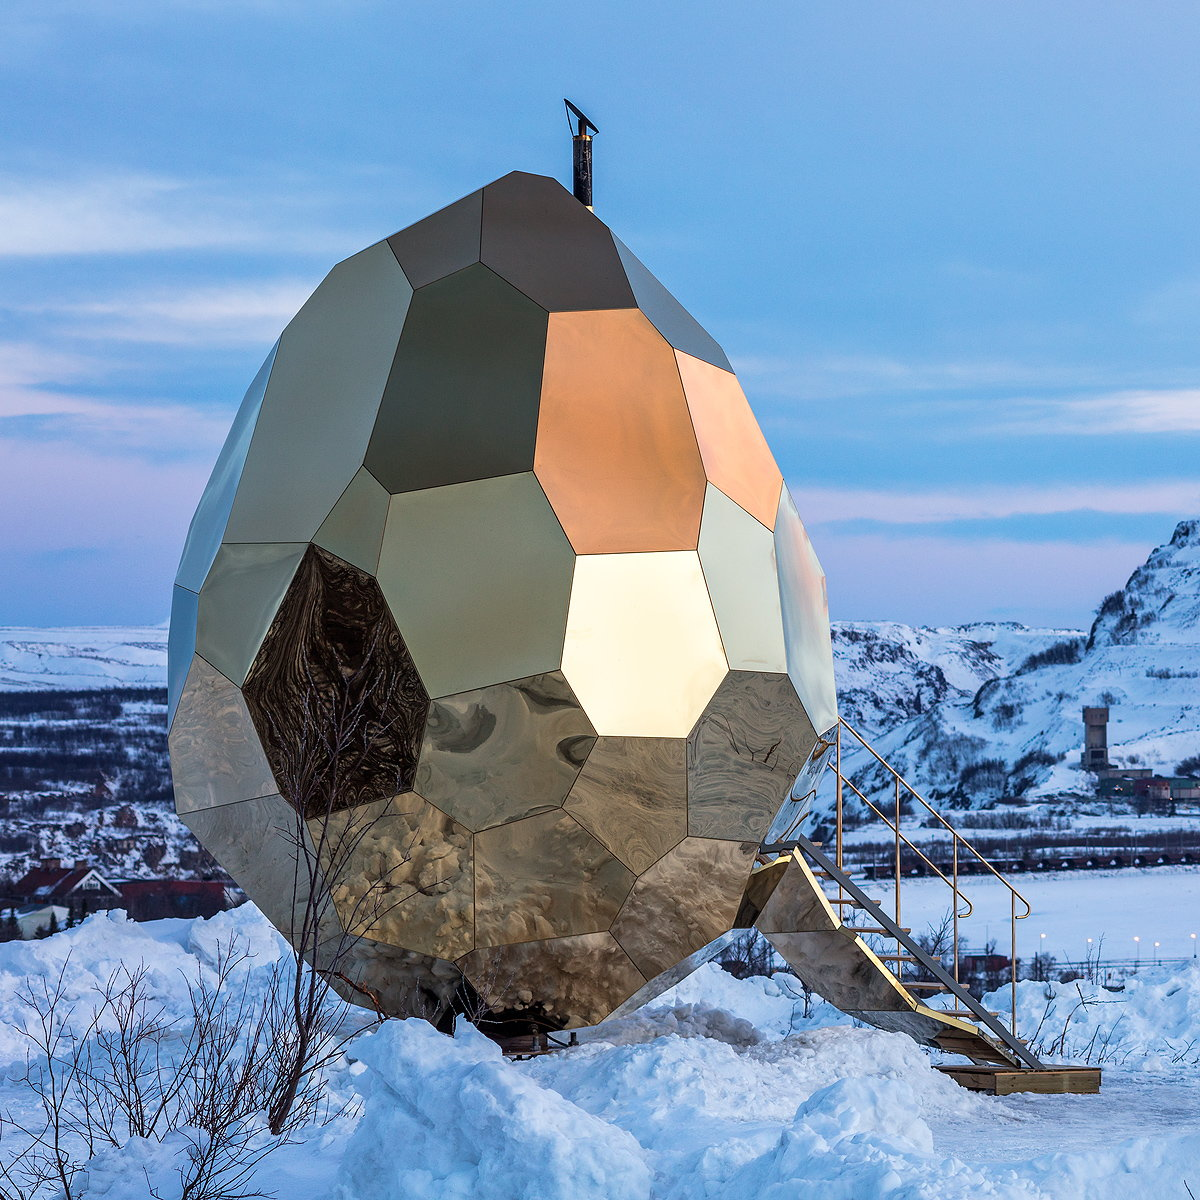 Solar Egg - A Public Sauna Art Installation by Bigert and Bergström